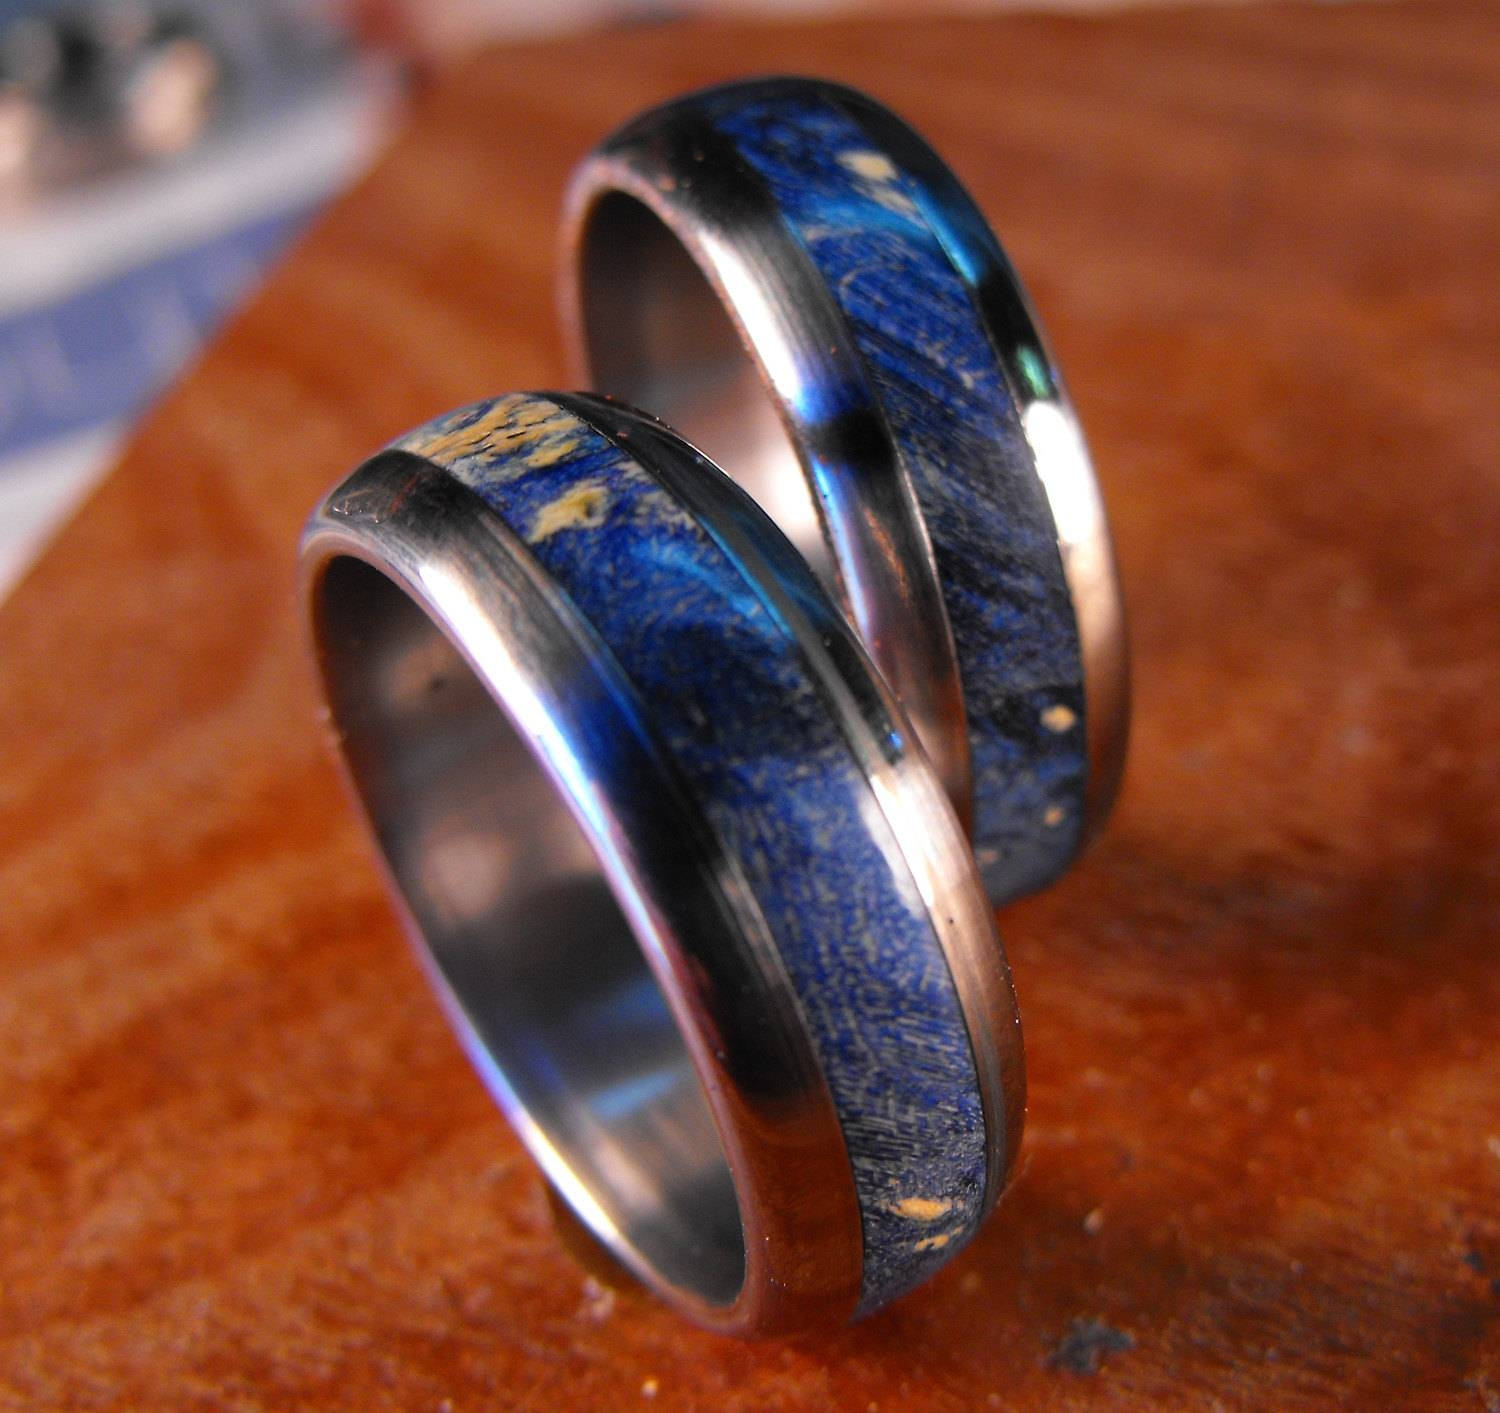 Titanium Rings Wedding Rings Wedding Ring Set His And Hers Regarding Wood Inlay Men's Wedding Bands (View 2 of 15)